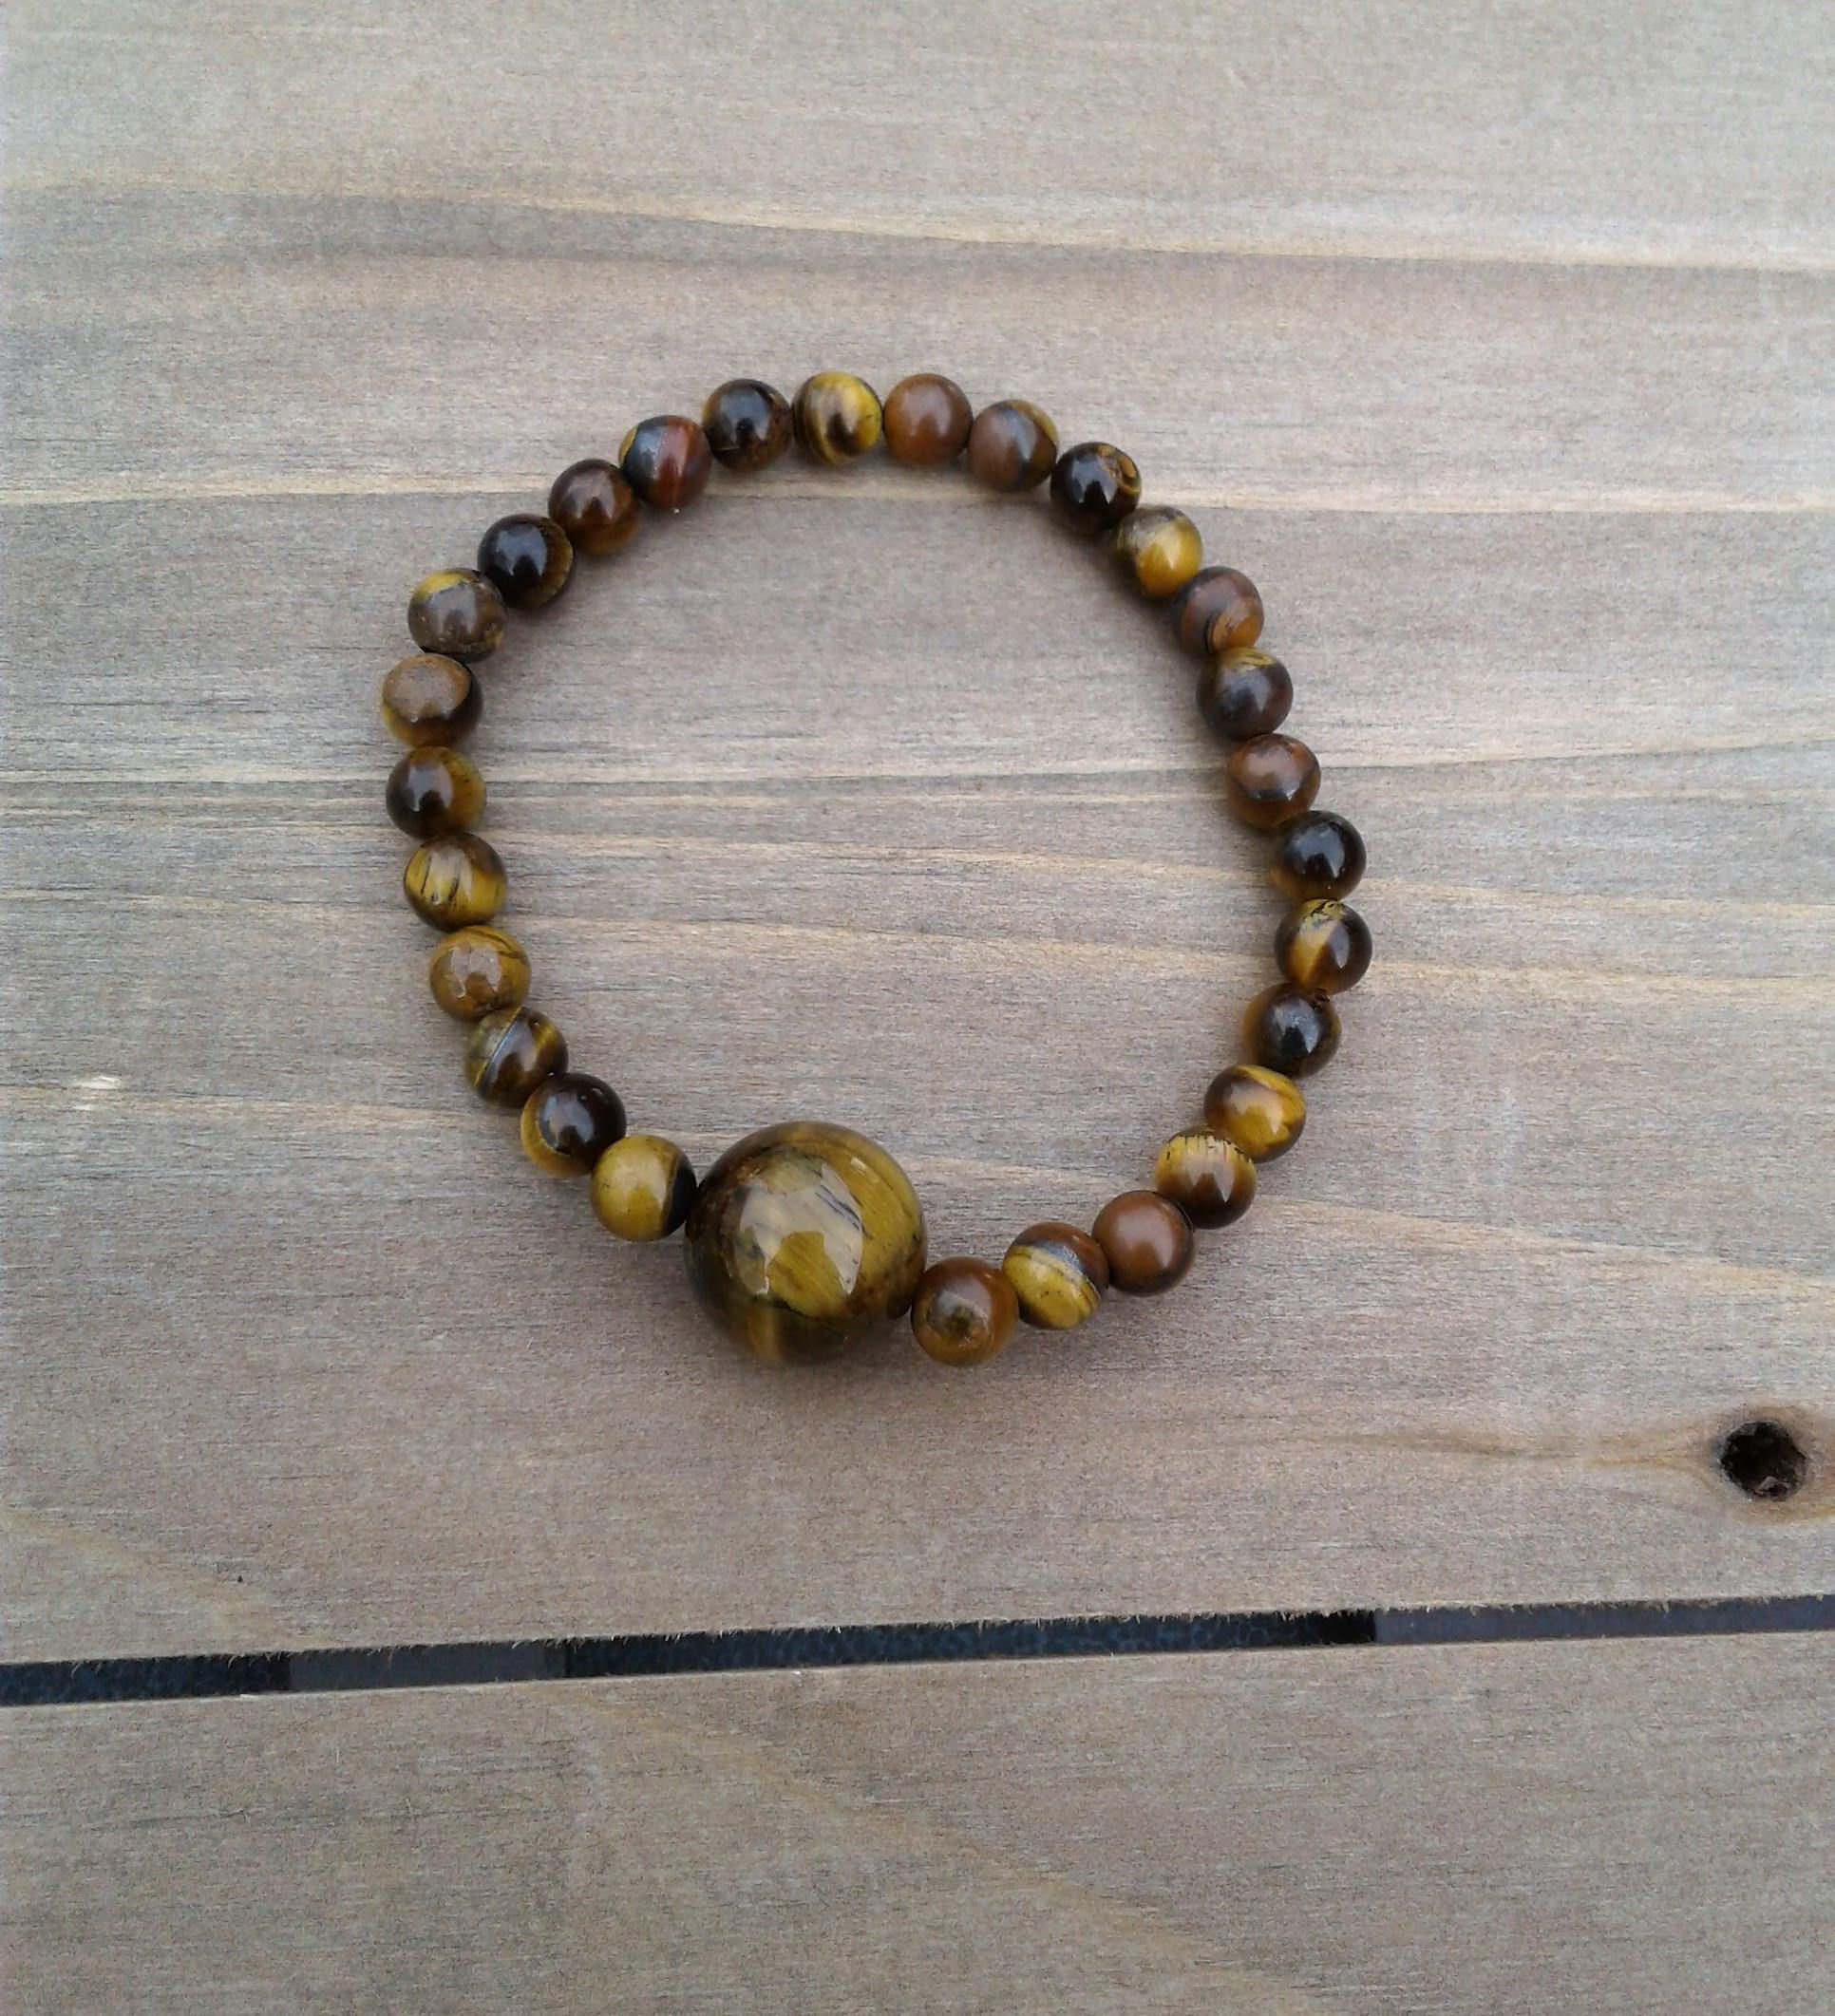 Tigers Eye Bracelet Healing Jewelry Womens Birthday Gift For Mom Mothers Day Under 10